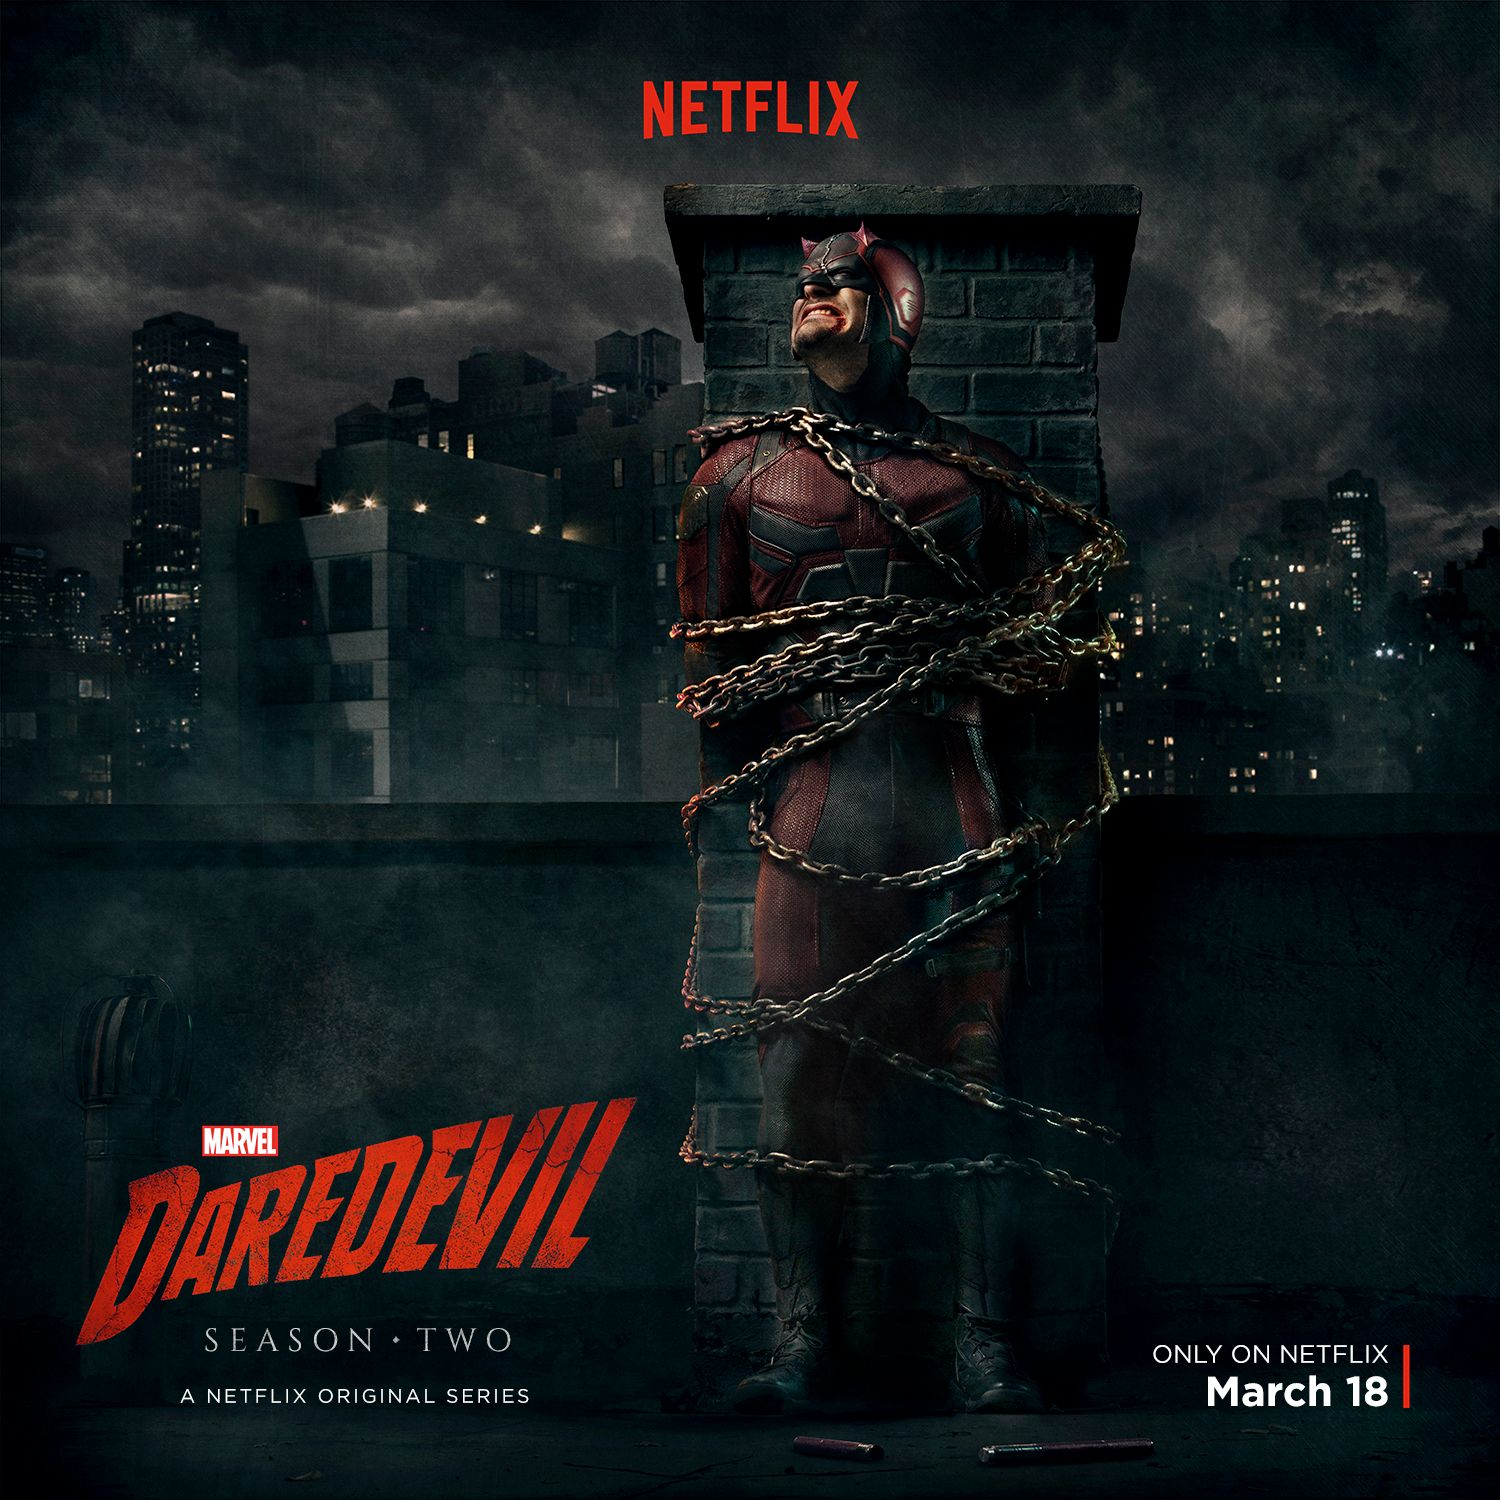 Daredevil Season 2 Poster Finds The Marvel Hero All Tied Up